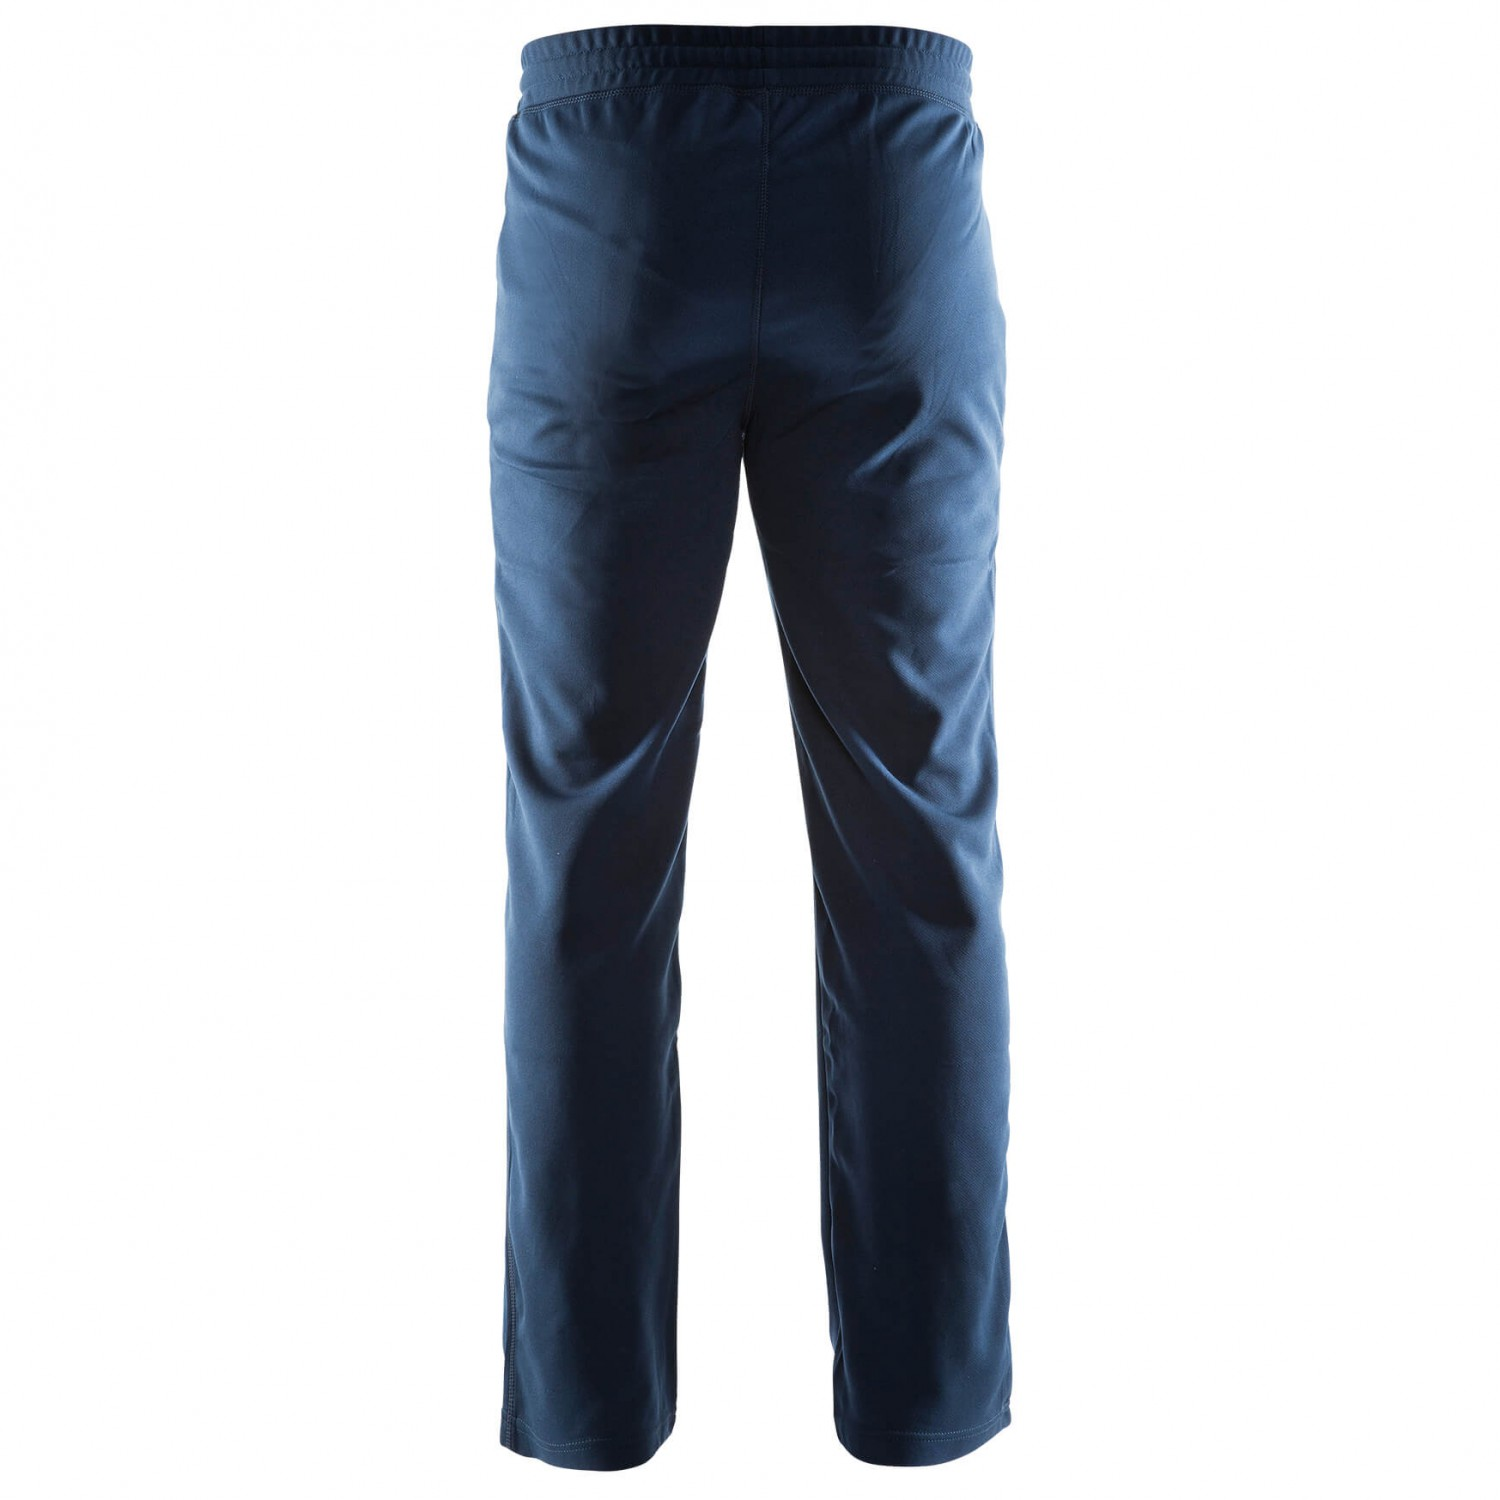 craft in the zone sweatpants jeans herren online kaufen. Black Bedroom Furniture Sets. Home Design Ideas